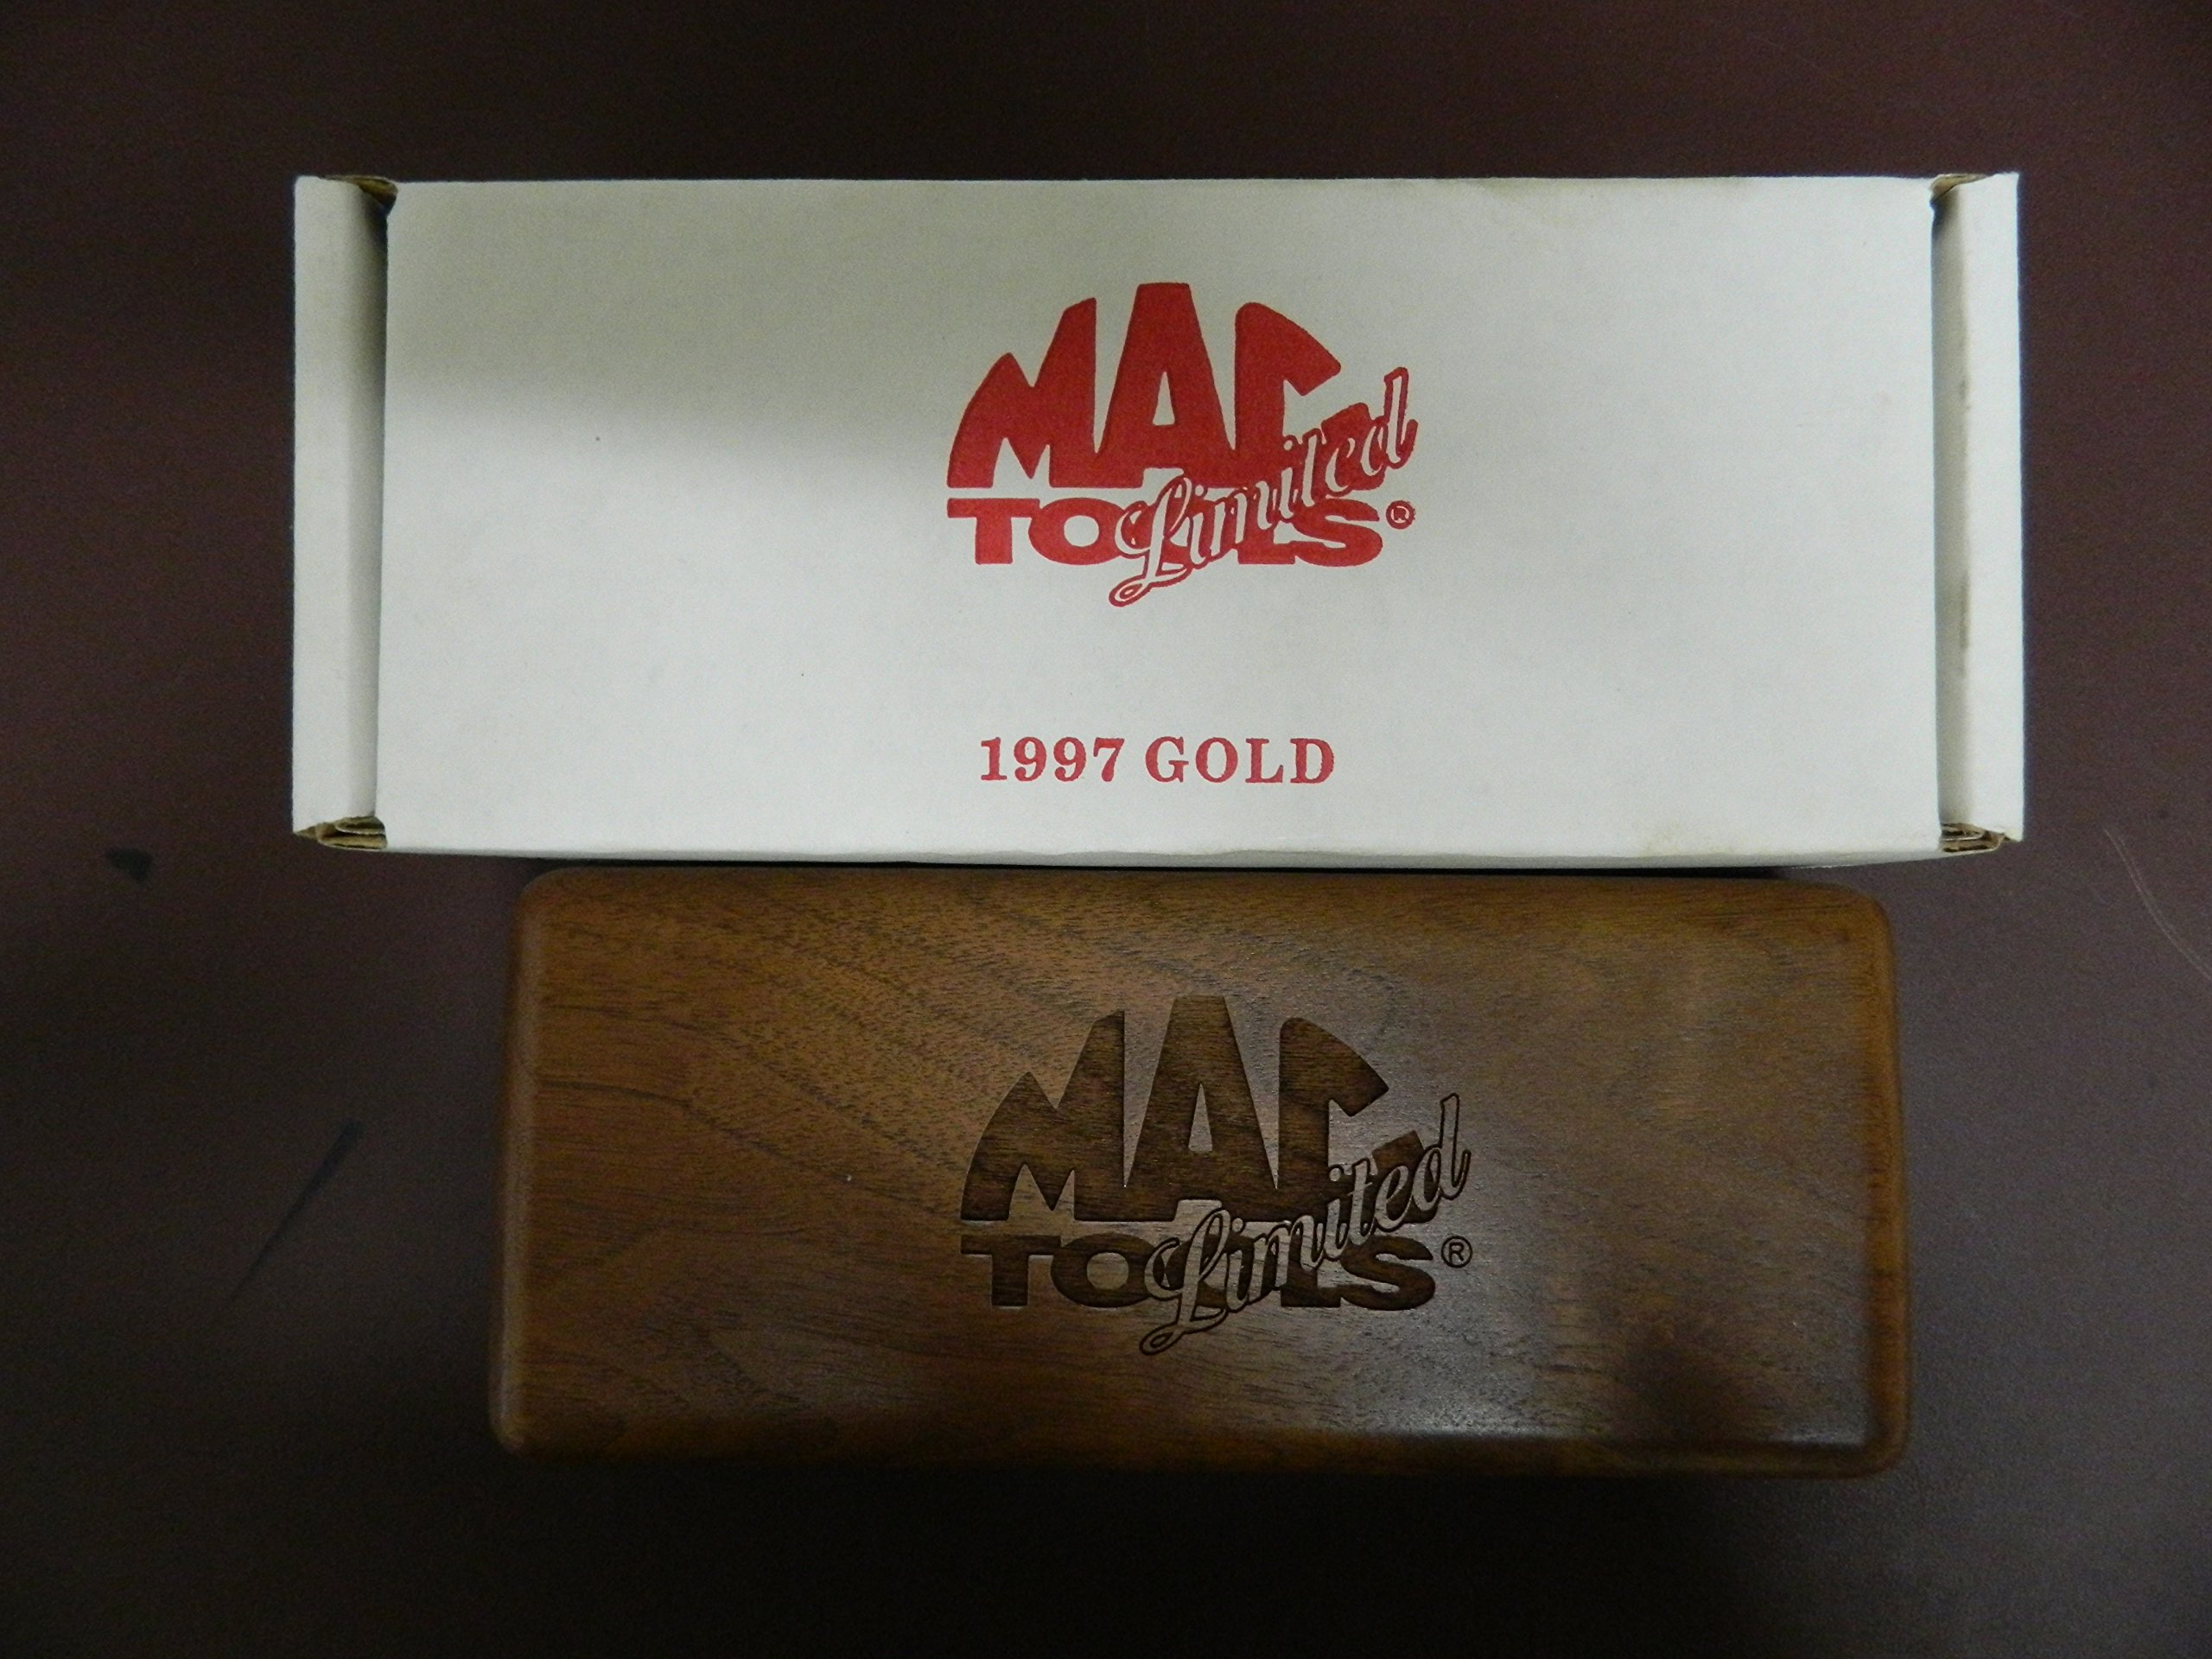 Mac Tools 3 Piece 24K Plated Chisel Set 1997, Size 6''-7 1/2'', Serials #0180